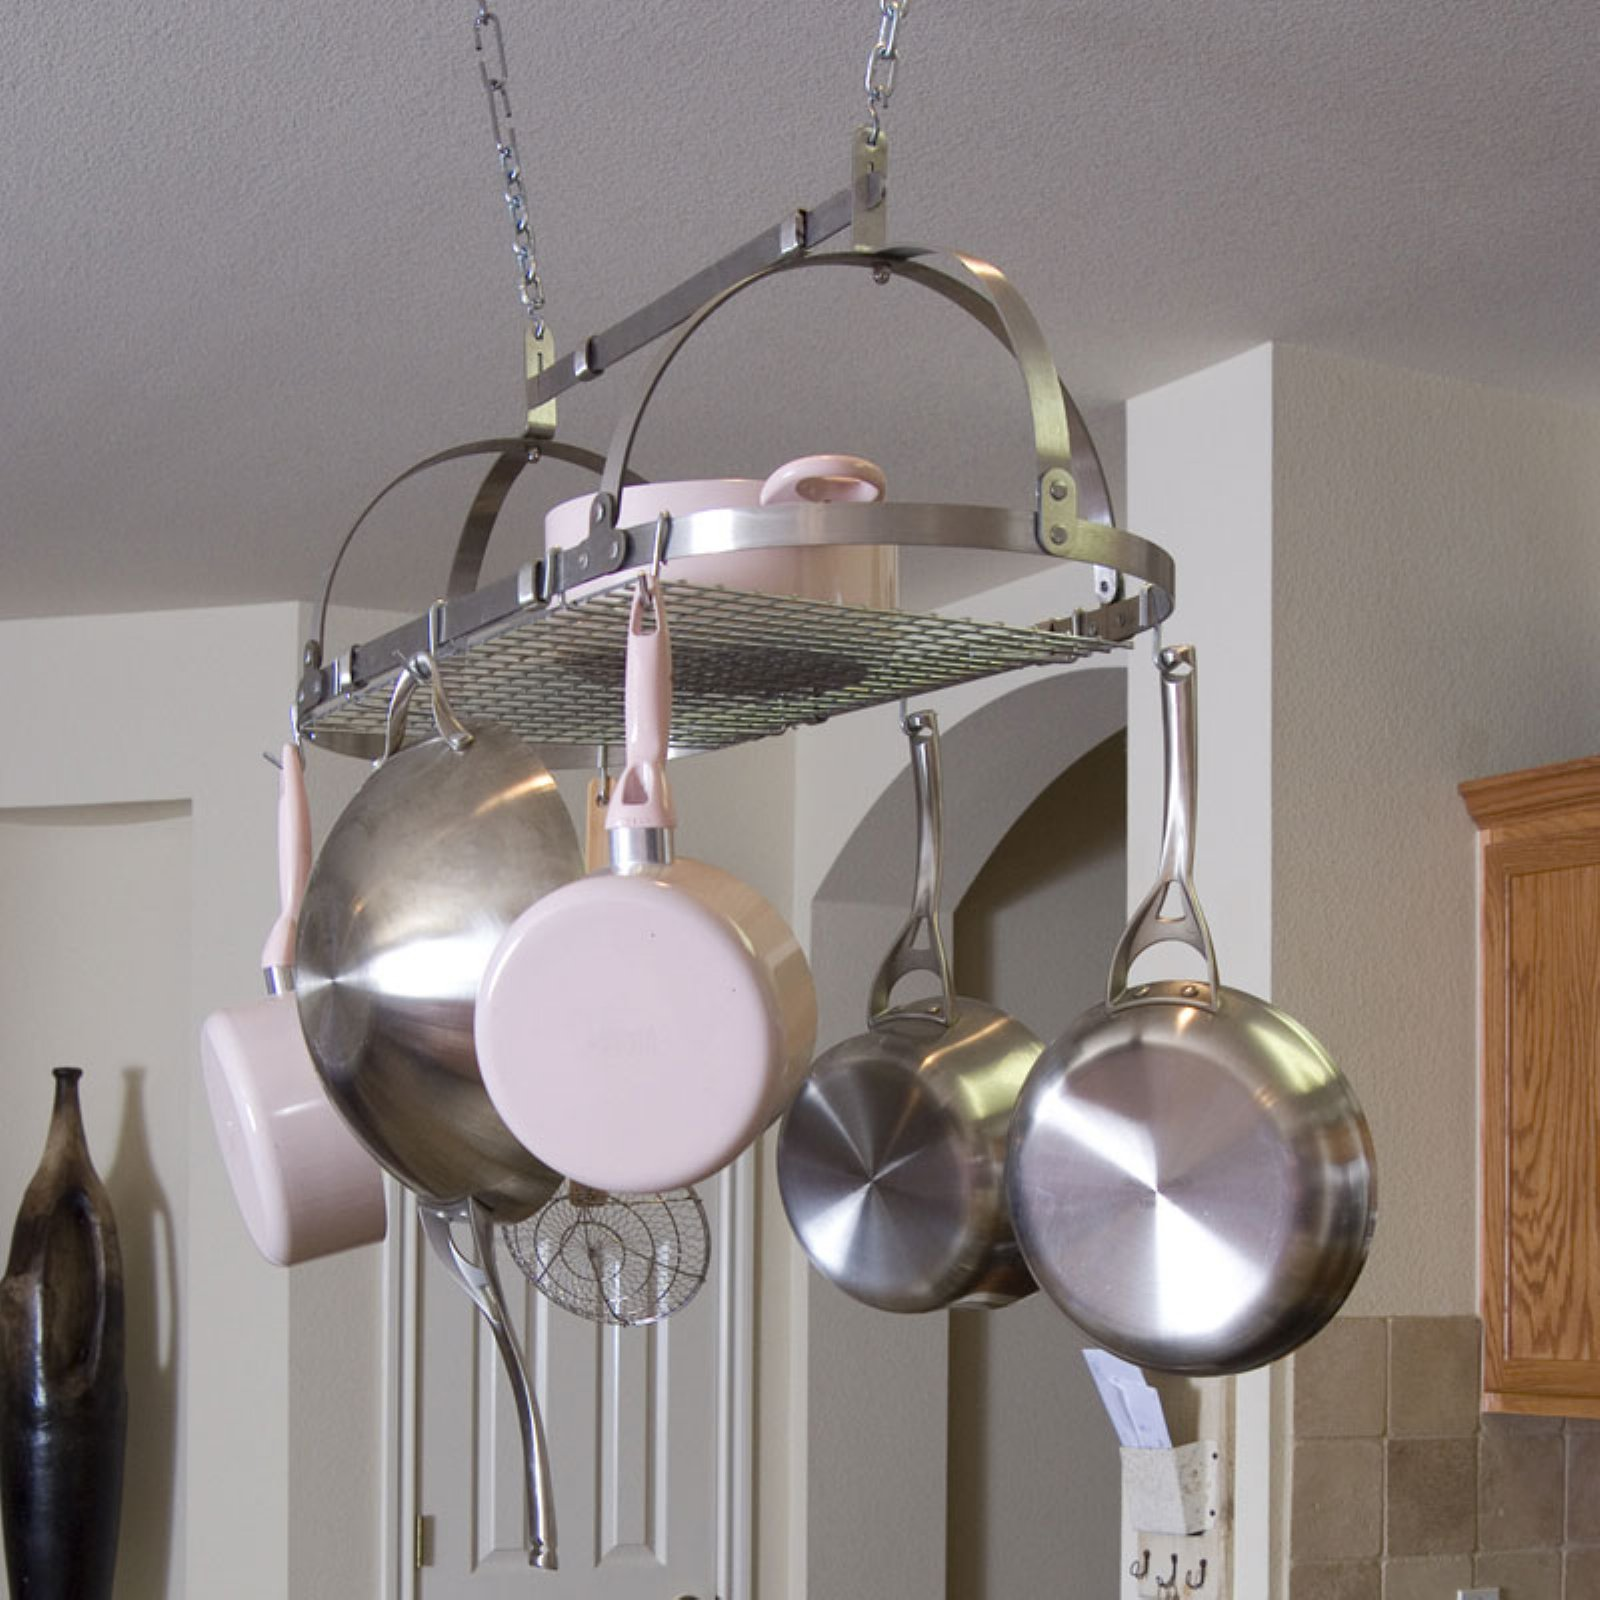 Expandable Stainless Oval Pot Rack